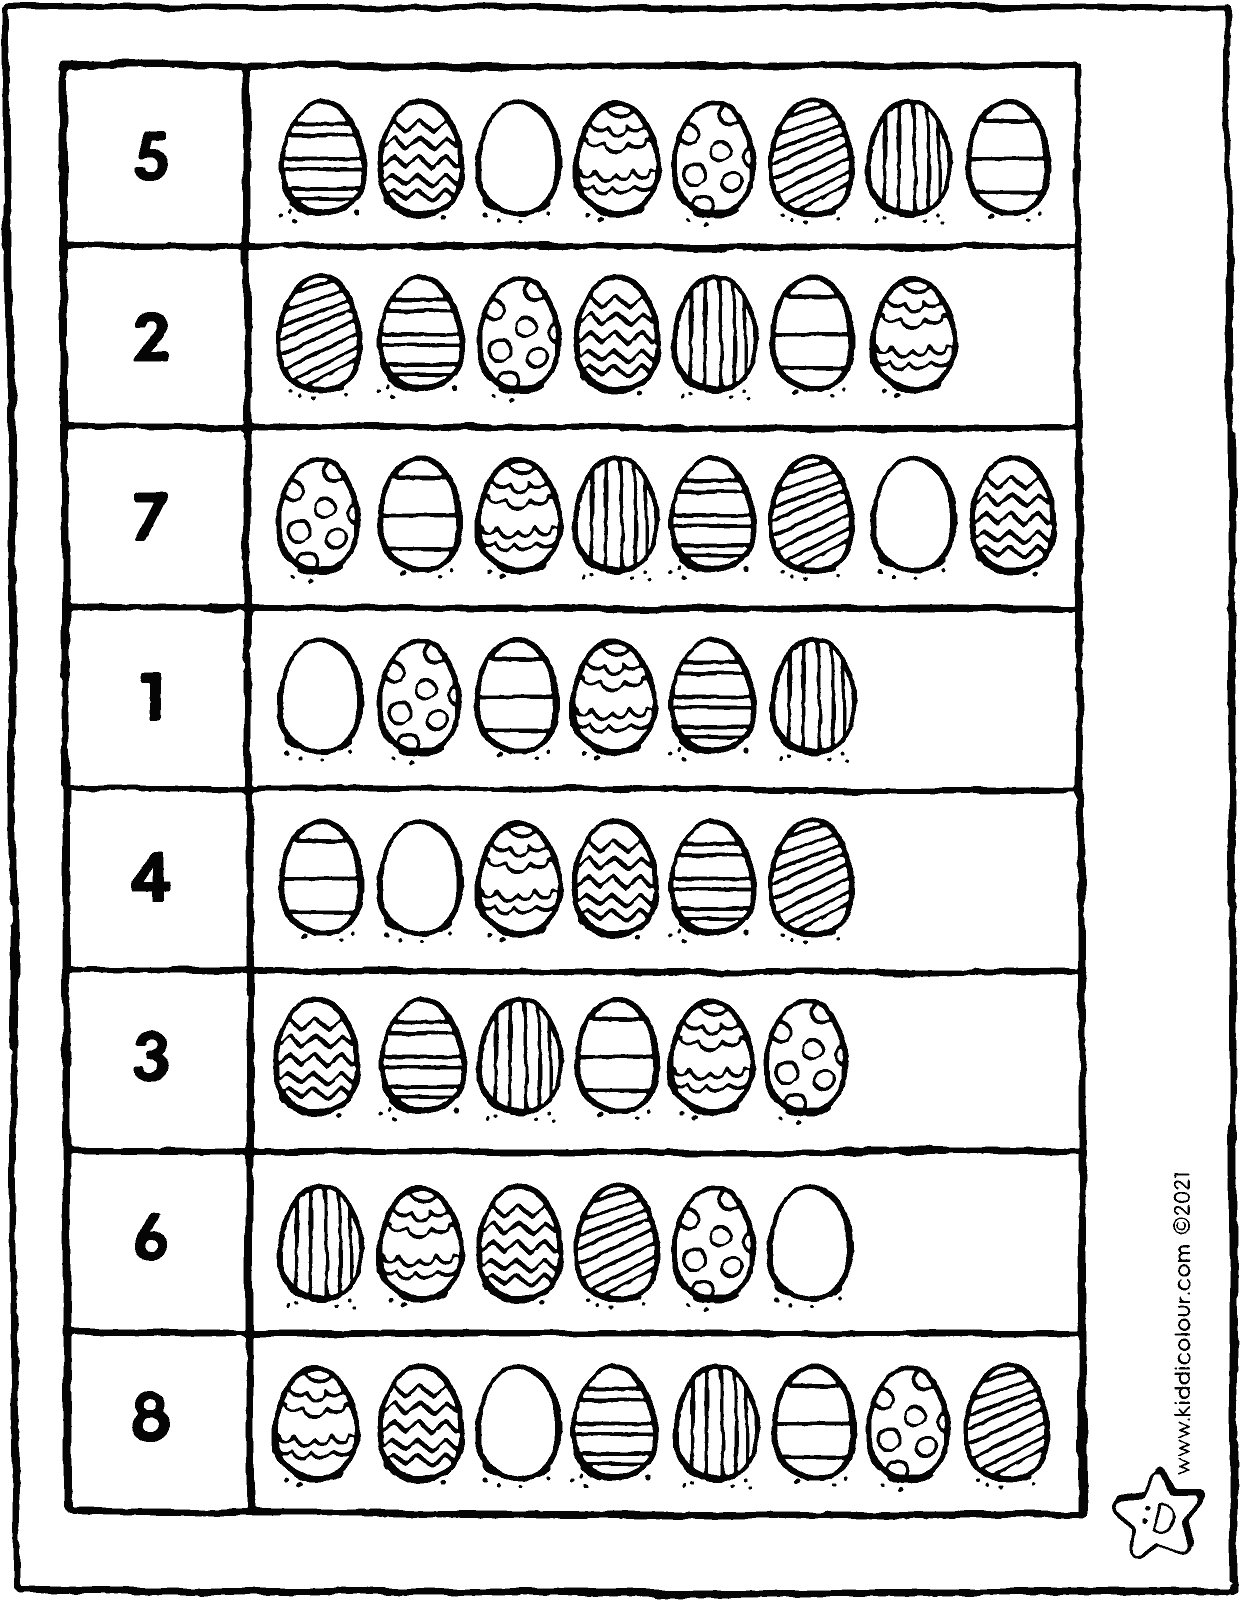 colour in the correct number of Easter eggs colouring page drawing picture 01V